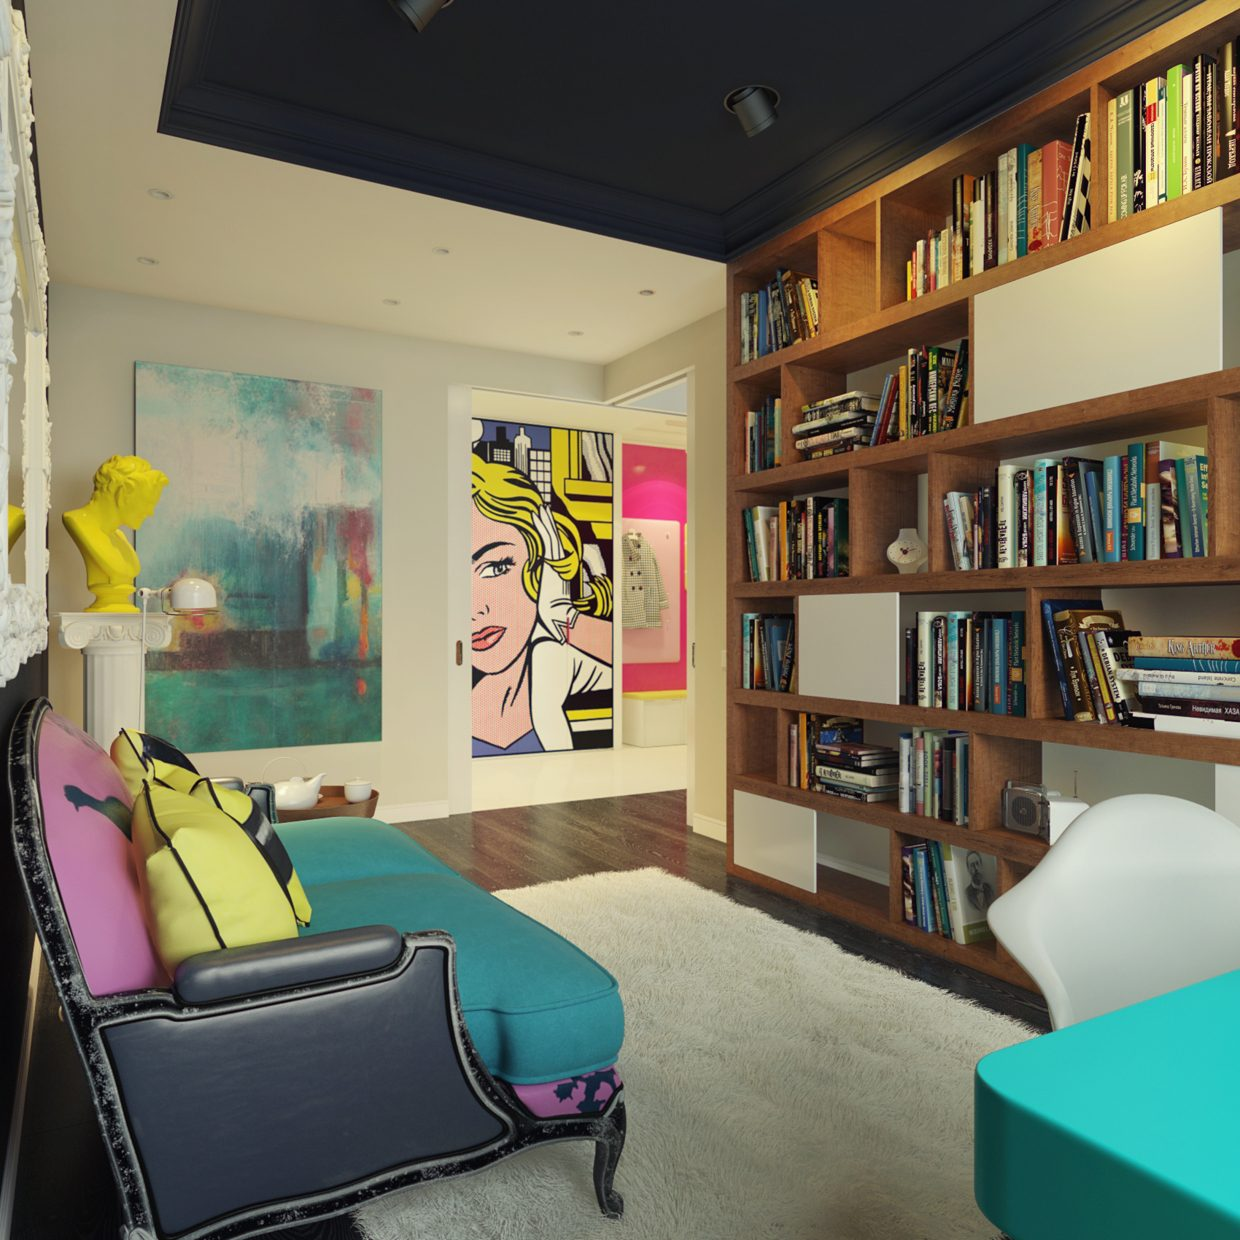 Modern pop art style apartment - Home decor apartment image ...